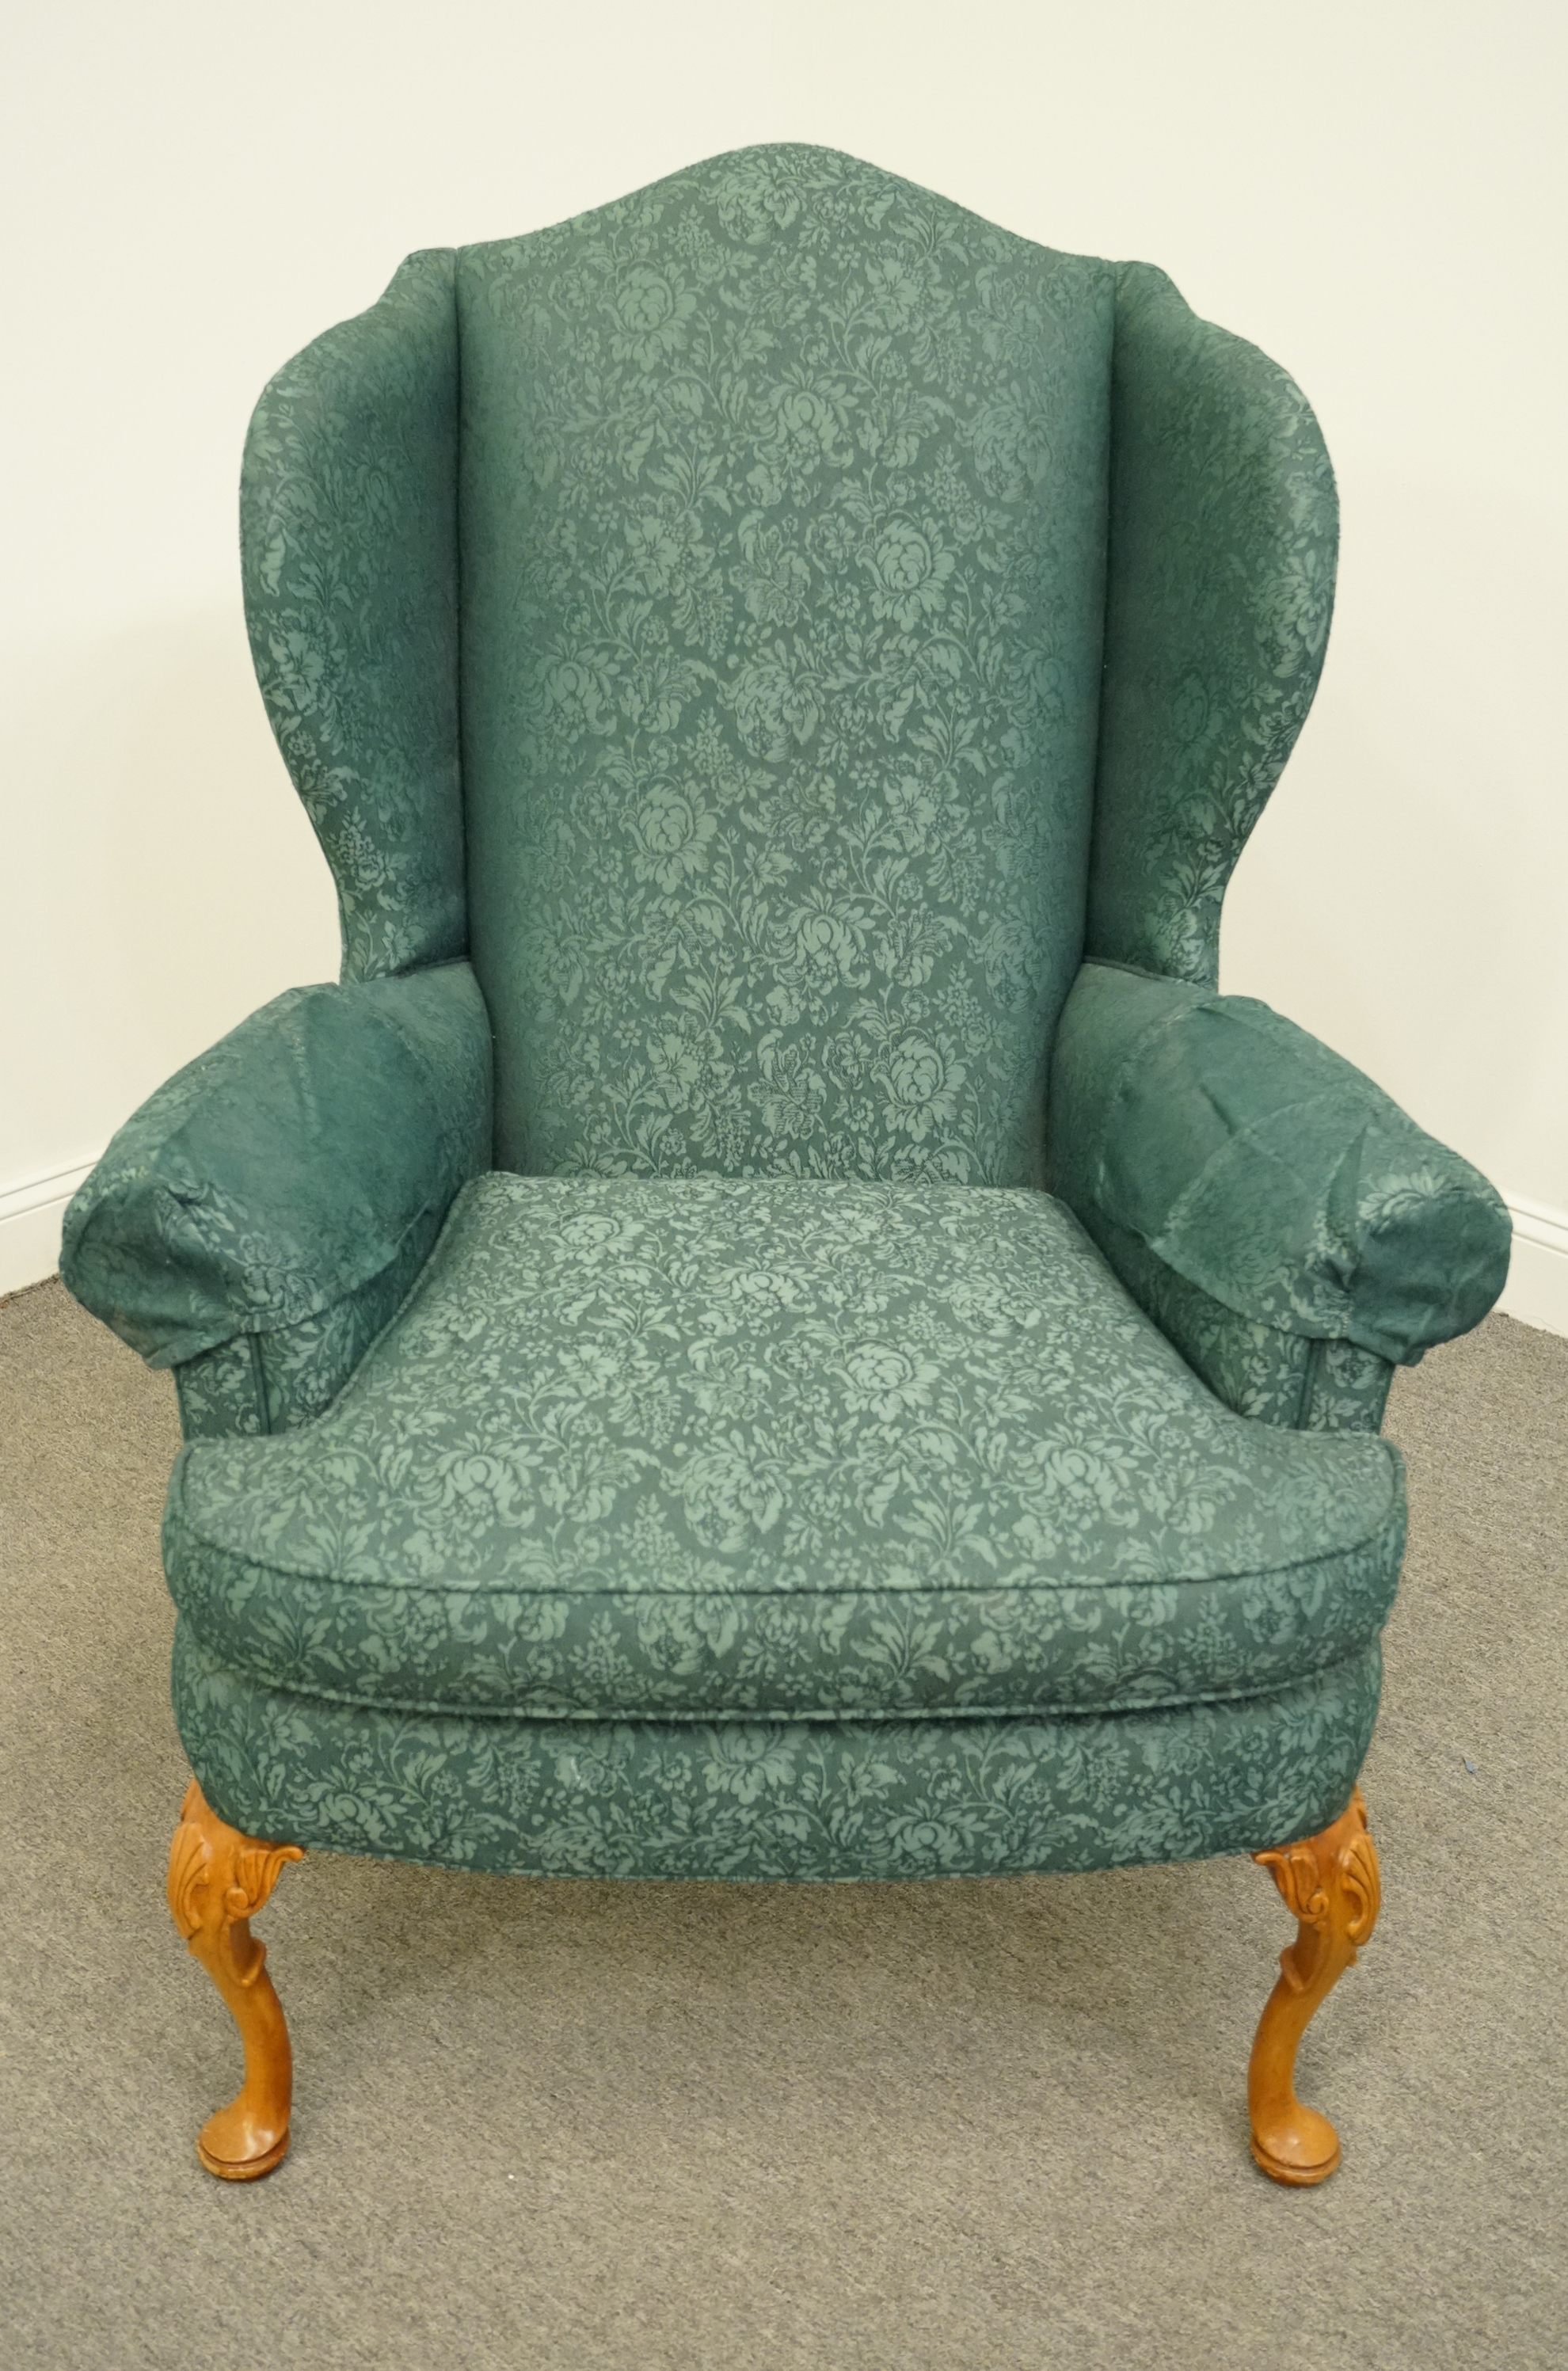 Traditional Late 20th Century Vintage Pennsylvania House Advantage Green  Teal Upholstered Wingback Arm Chair For Sale